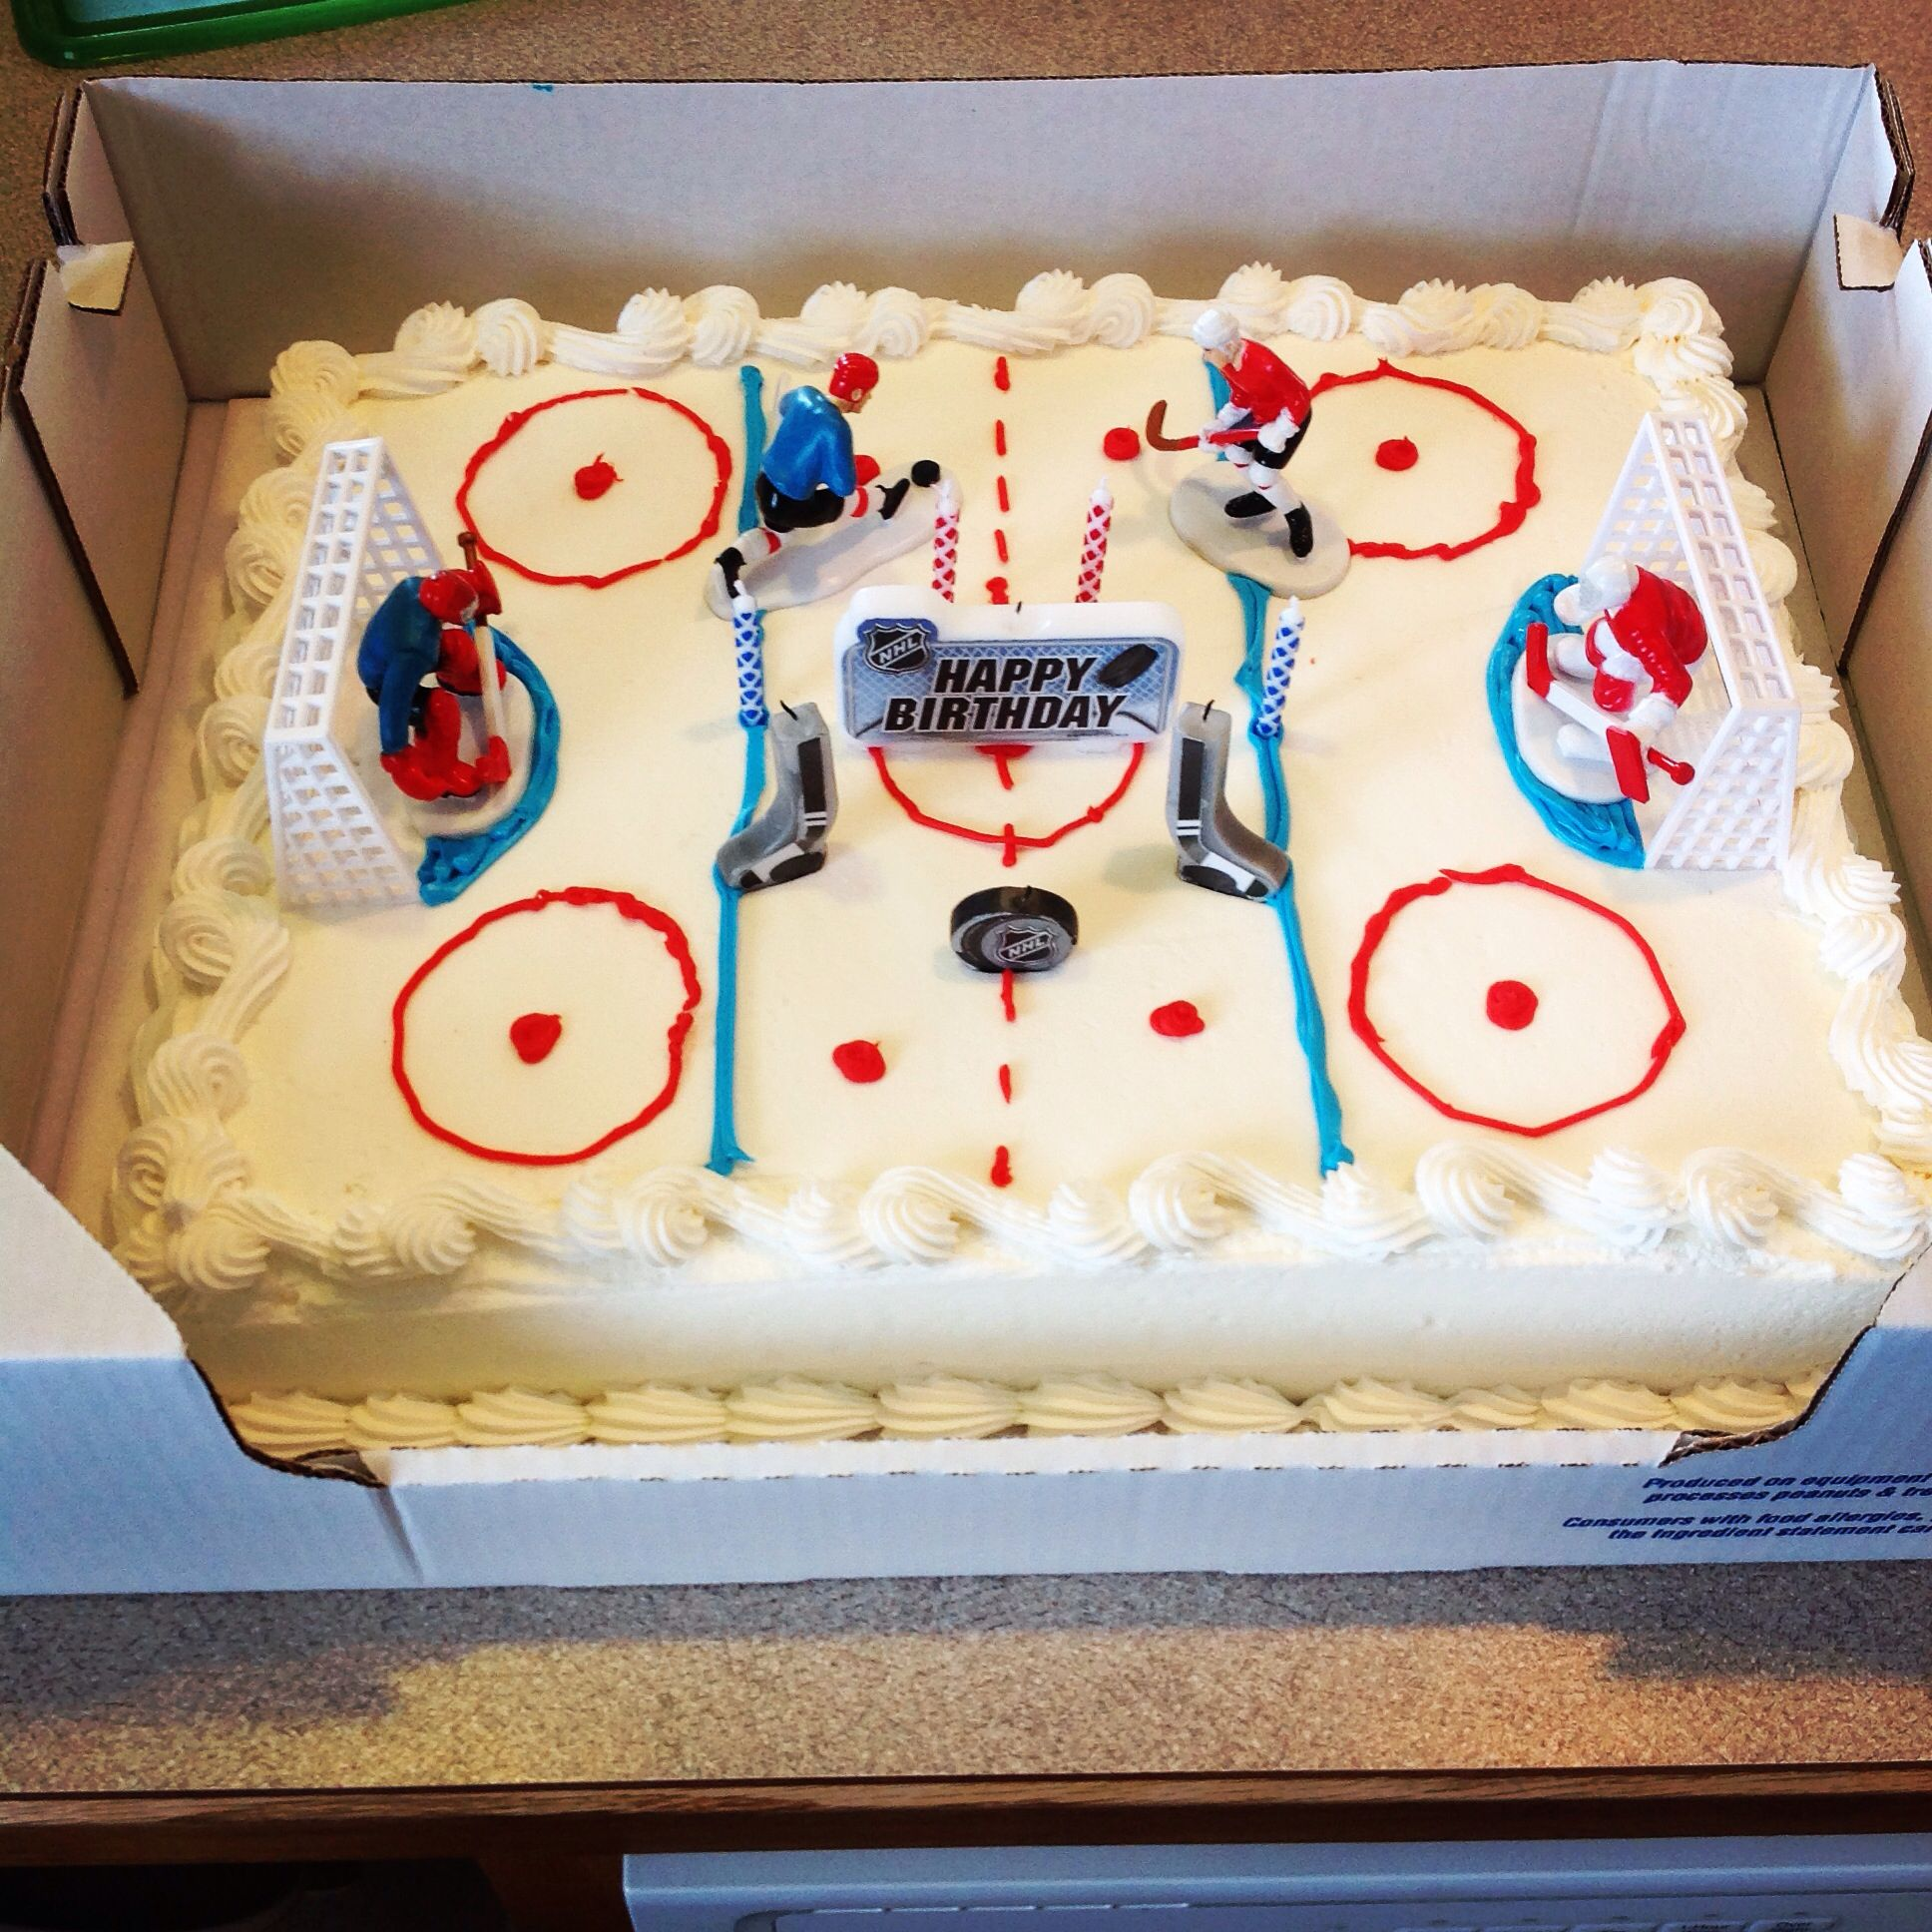 Superb Hockey Rink Birthday Cake Cake From Costco Where I Requested A Personalised Birthday Cards Petedlily Jamesorg